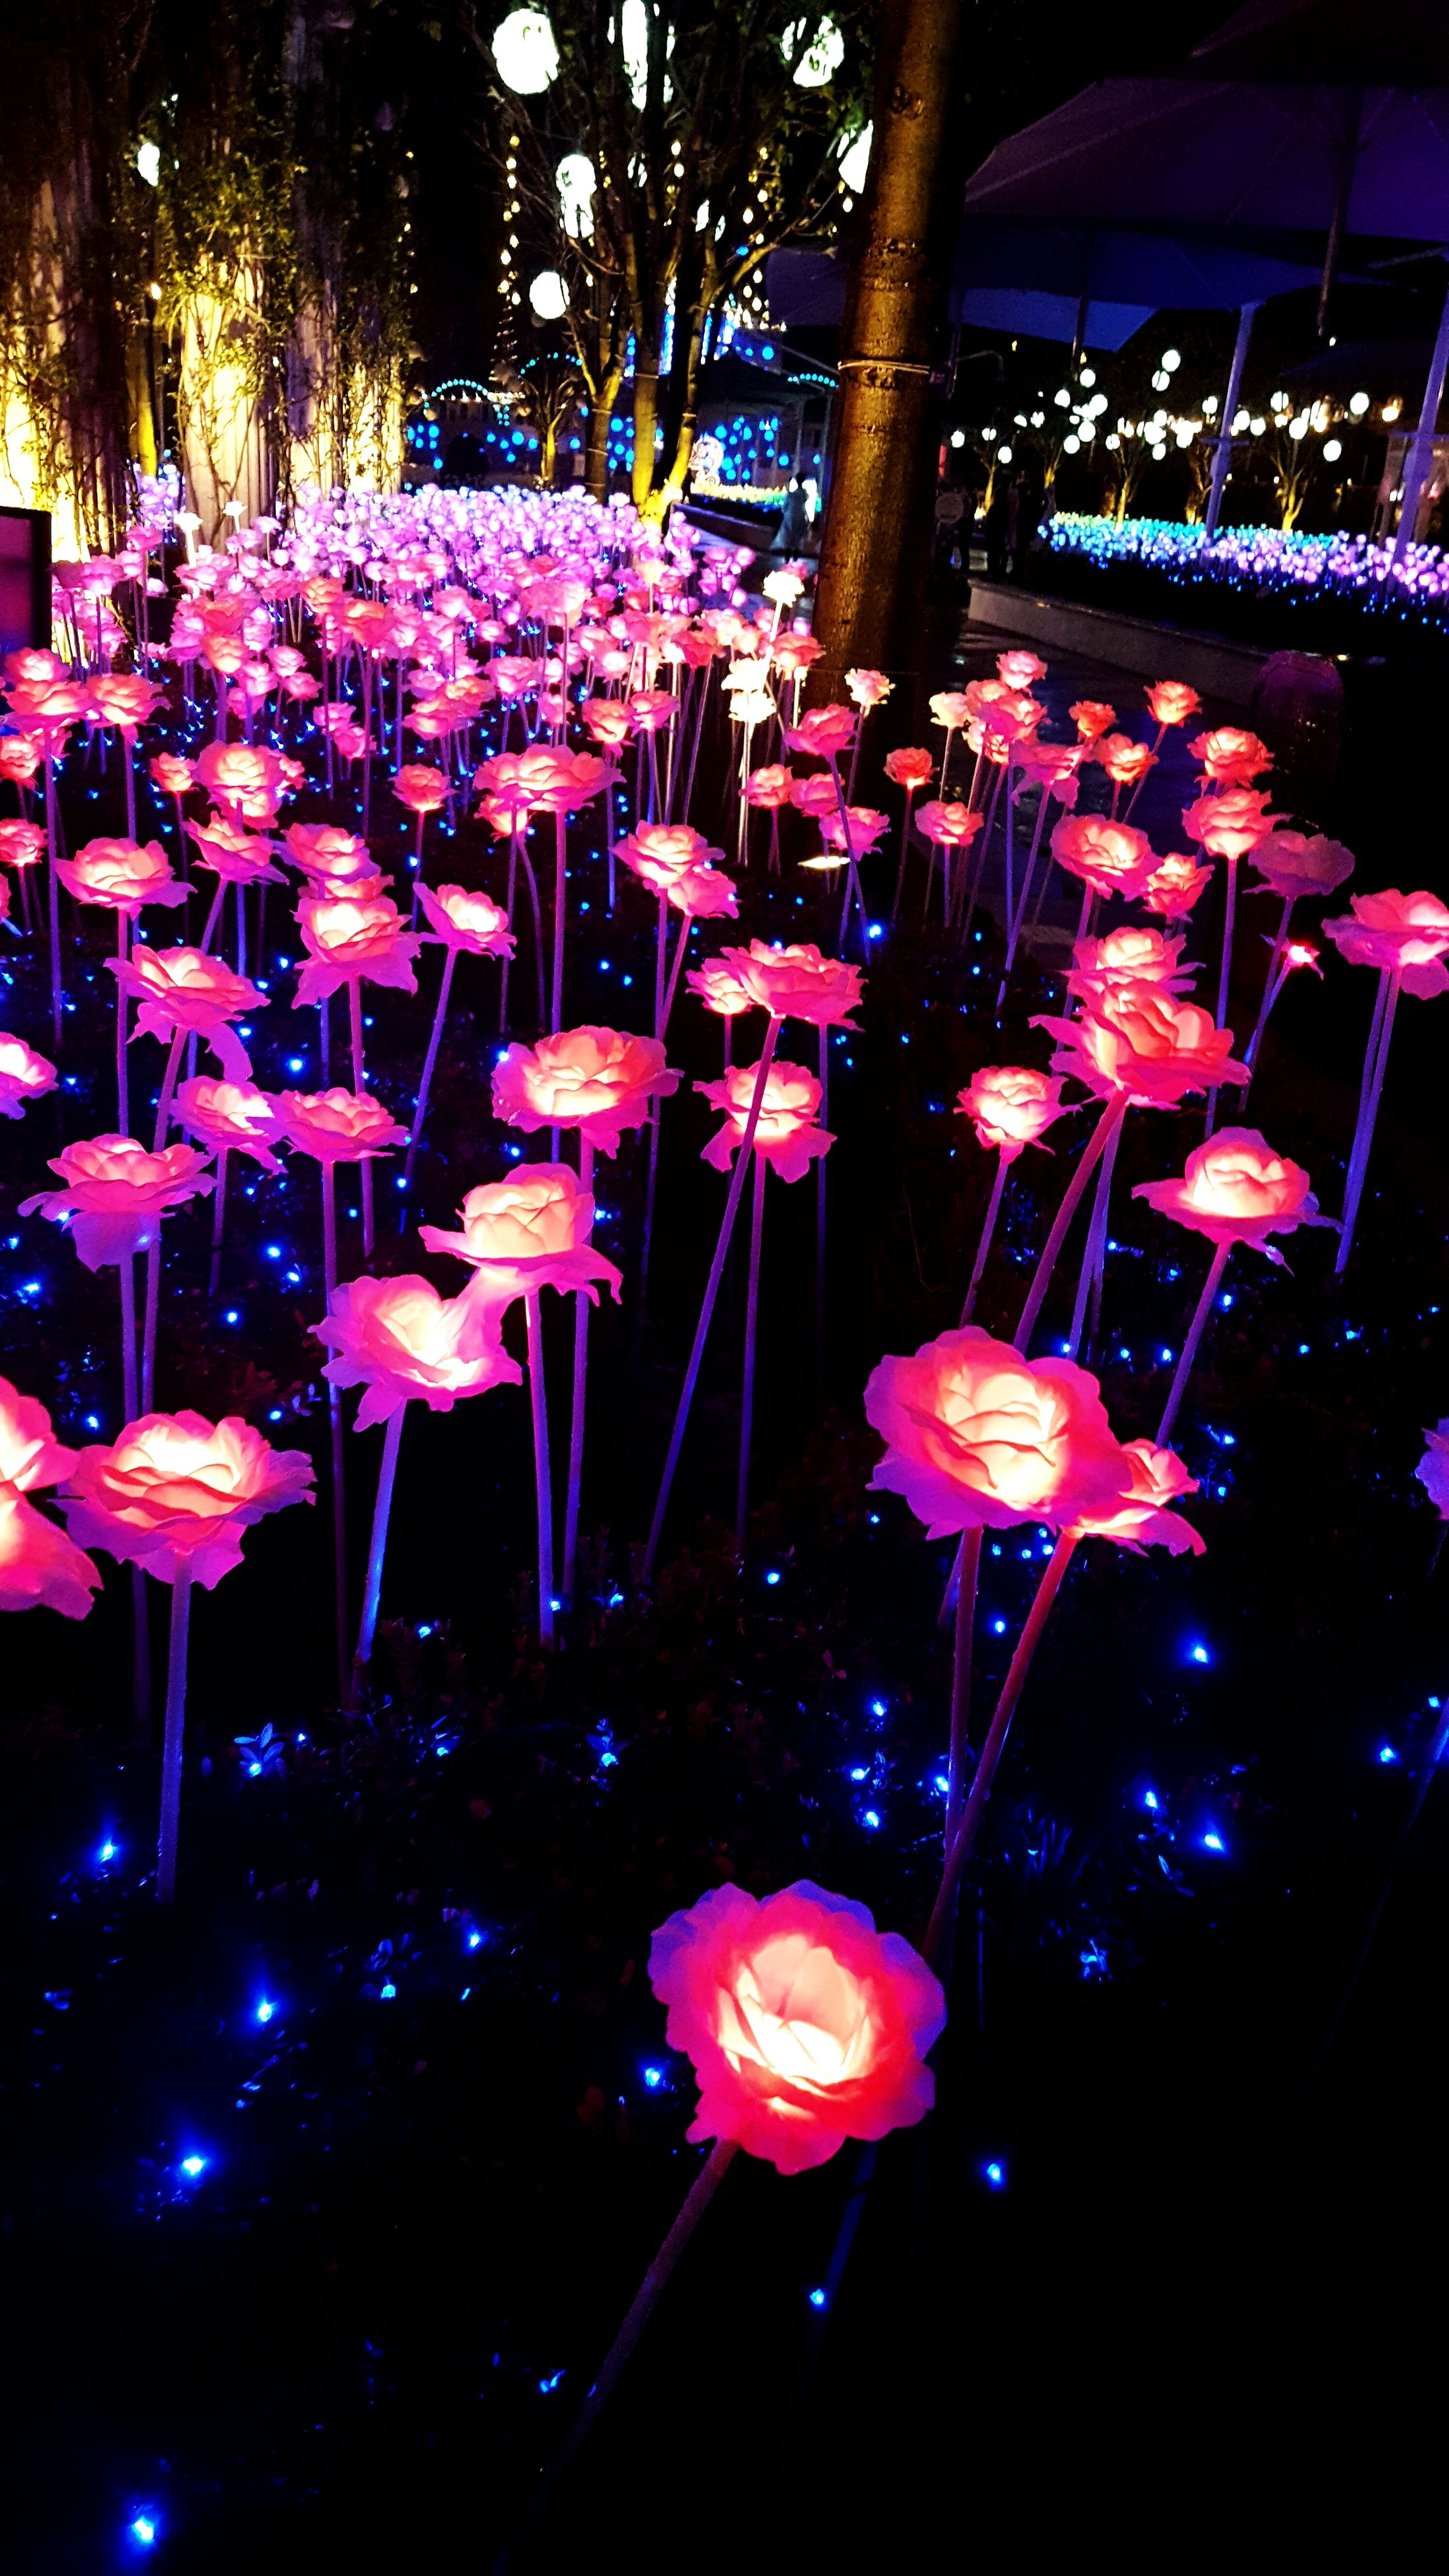 illuminated, night, lighting equipment, indoors, hanging, decoration, celebration, arts culture and entertainment, abundance, pink color, flower, light - natural phenomenon, in a row, light, event, large group of objects, multi colored, arrangement, tradition, no people